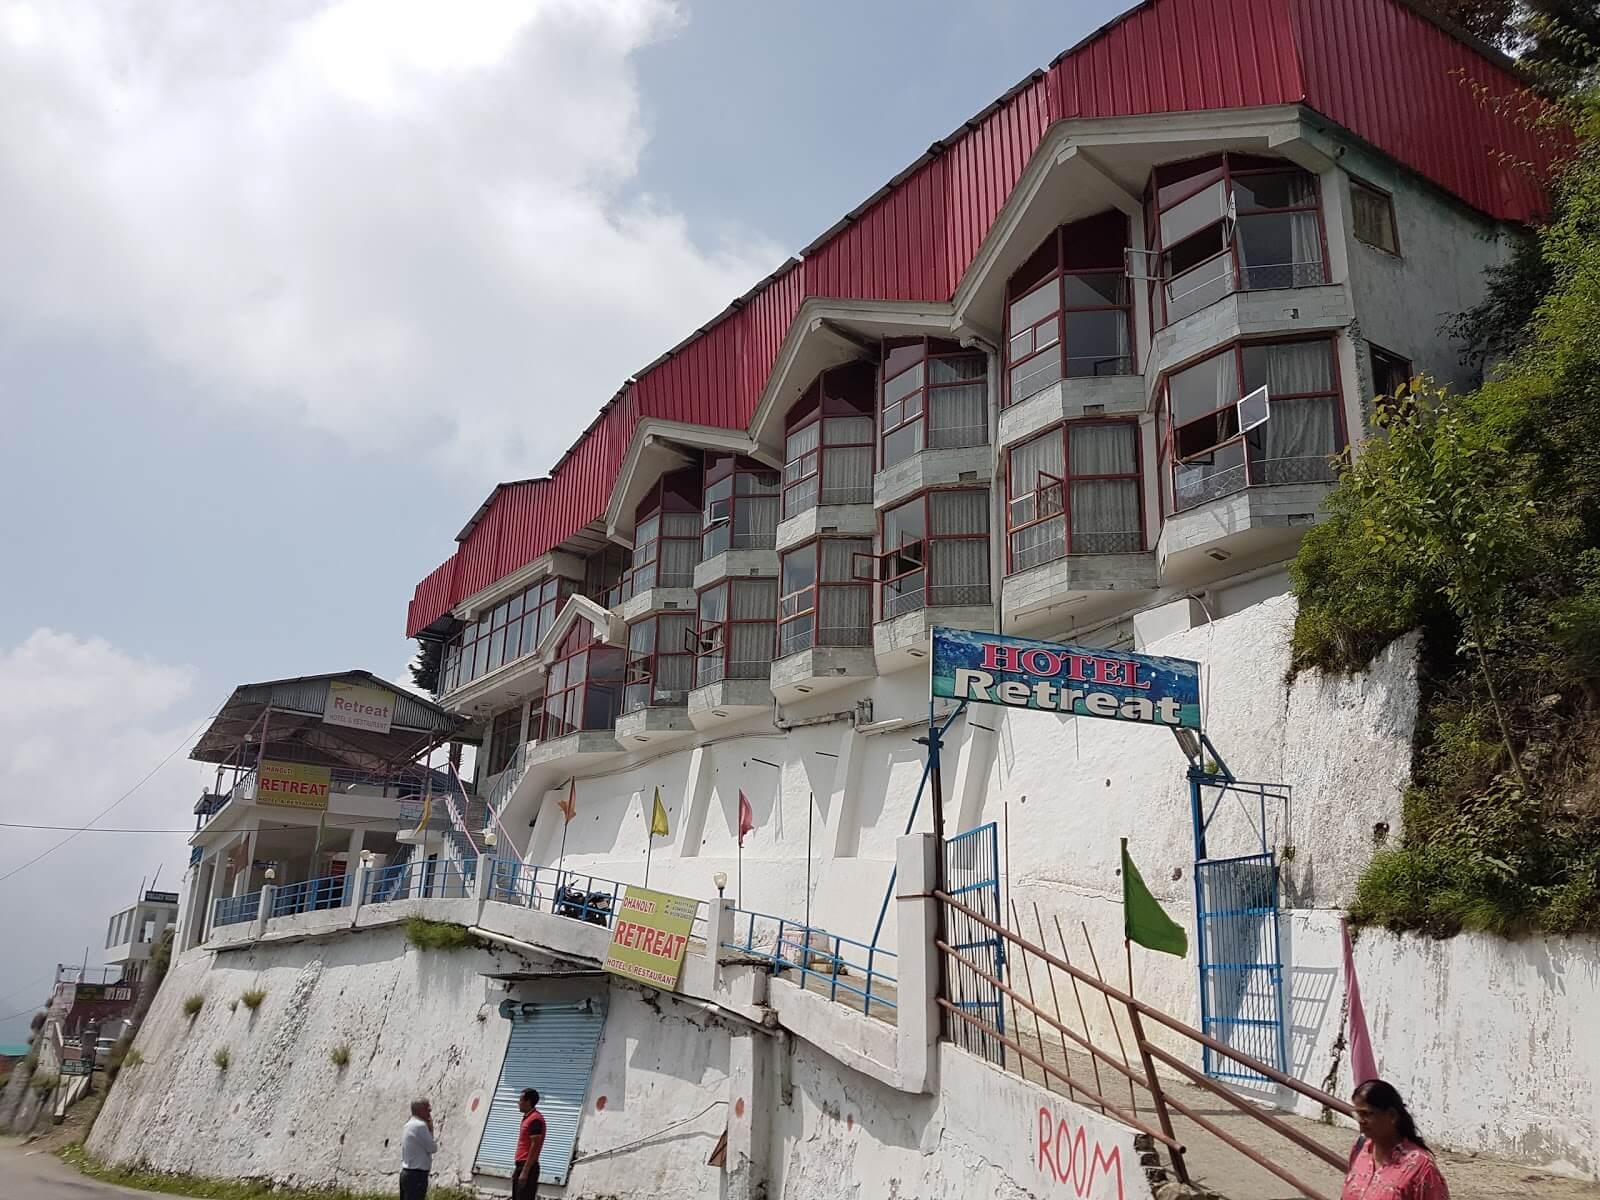 A view of an old hotel in Dhanaulti